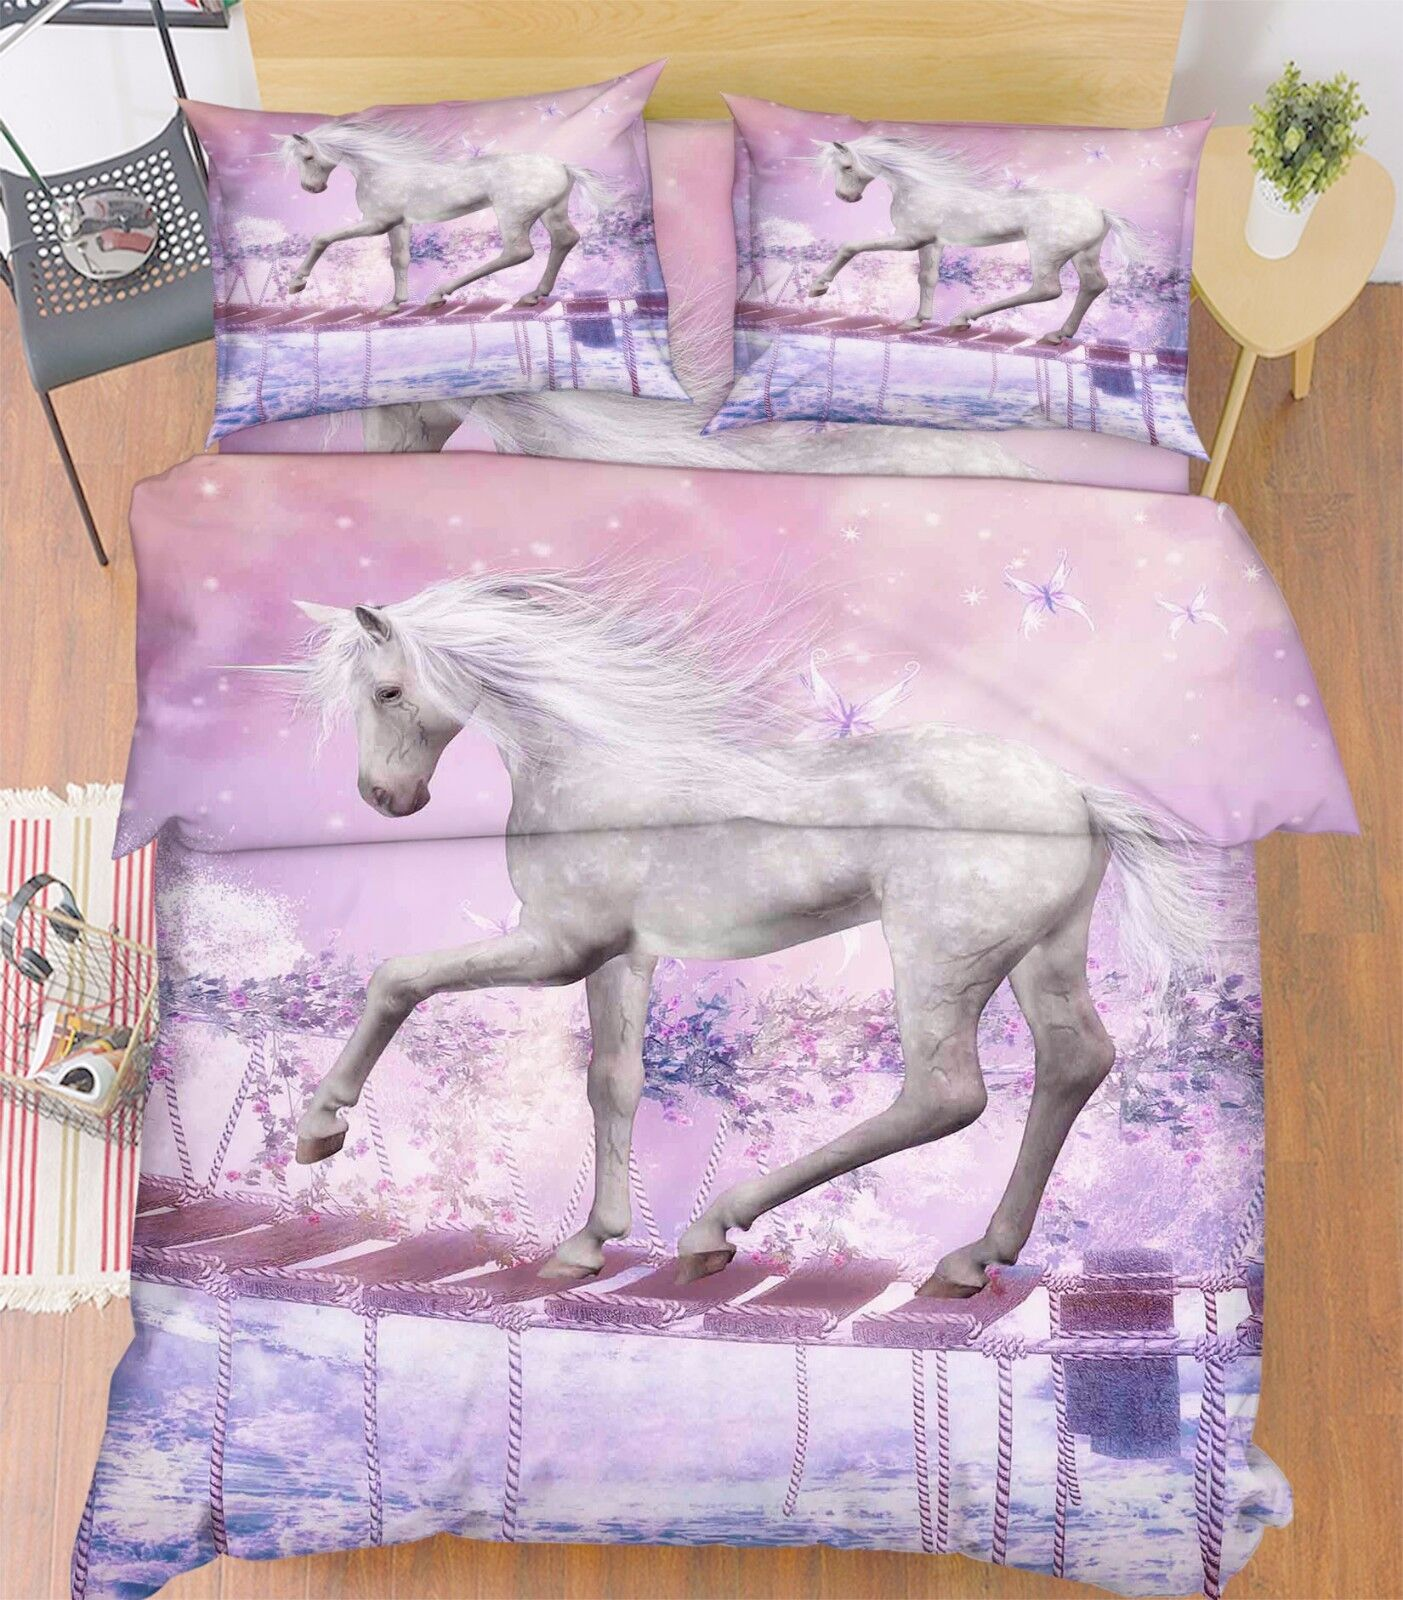 3D Unicorn Weiß 876 Bed Pillowcases Quilt Duvet Cover Set Single Queen UK Kyra